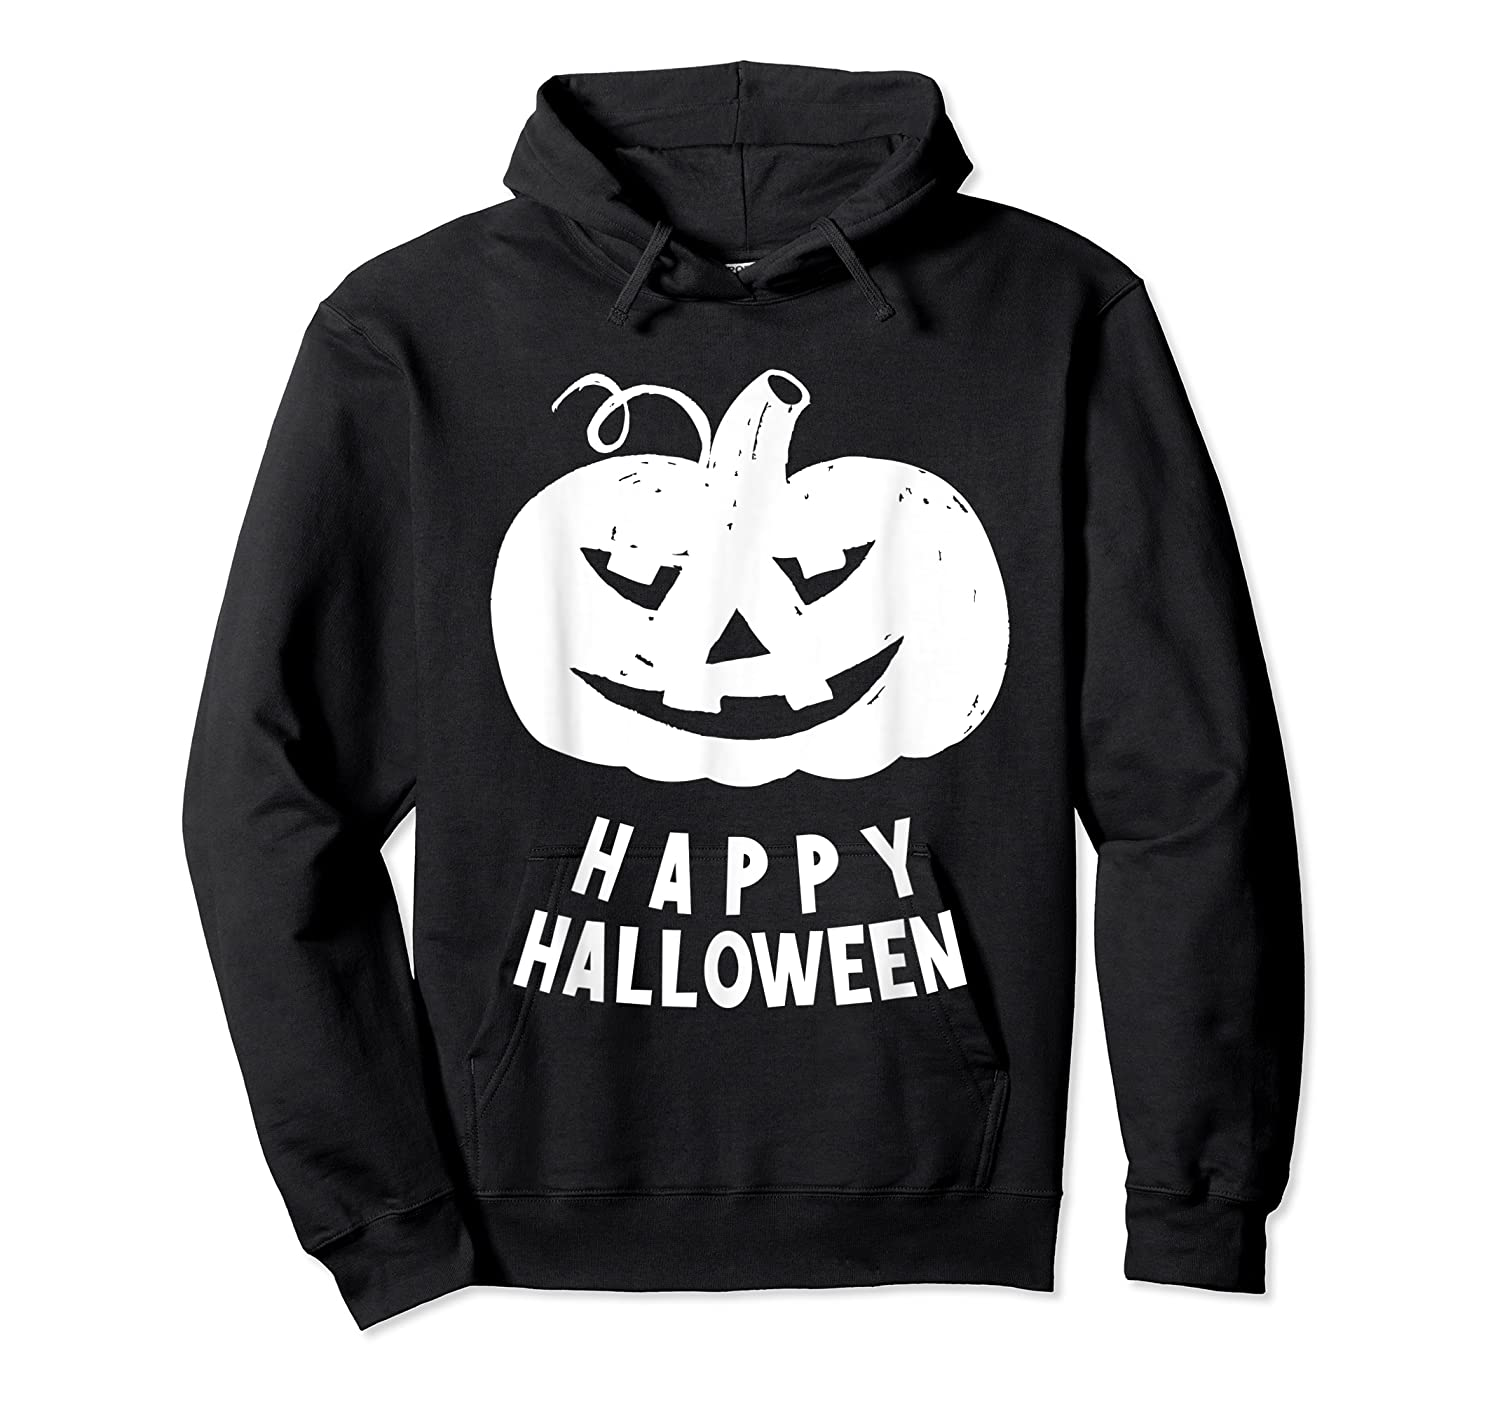 Funny Happy Halloween Costumes Scary Spooky Pumpkin Costume Shirts Unisex Pullover Hoodie